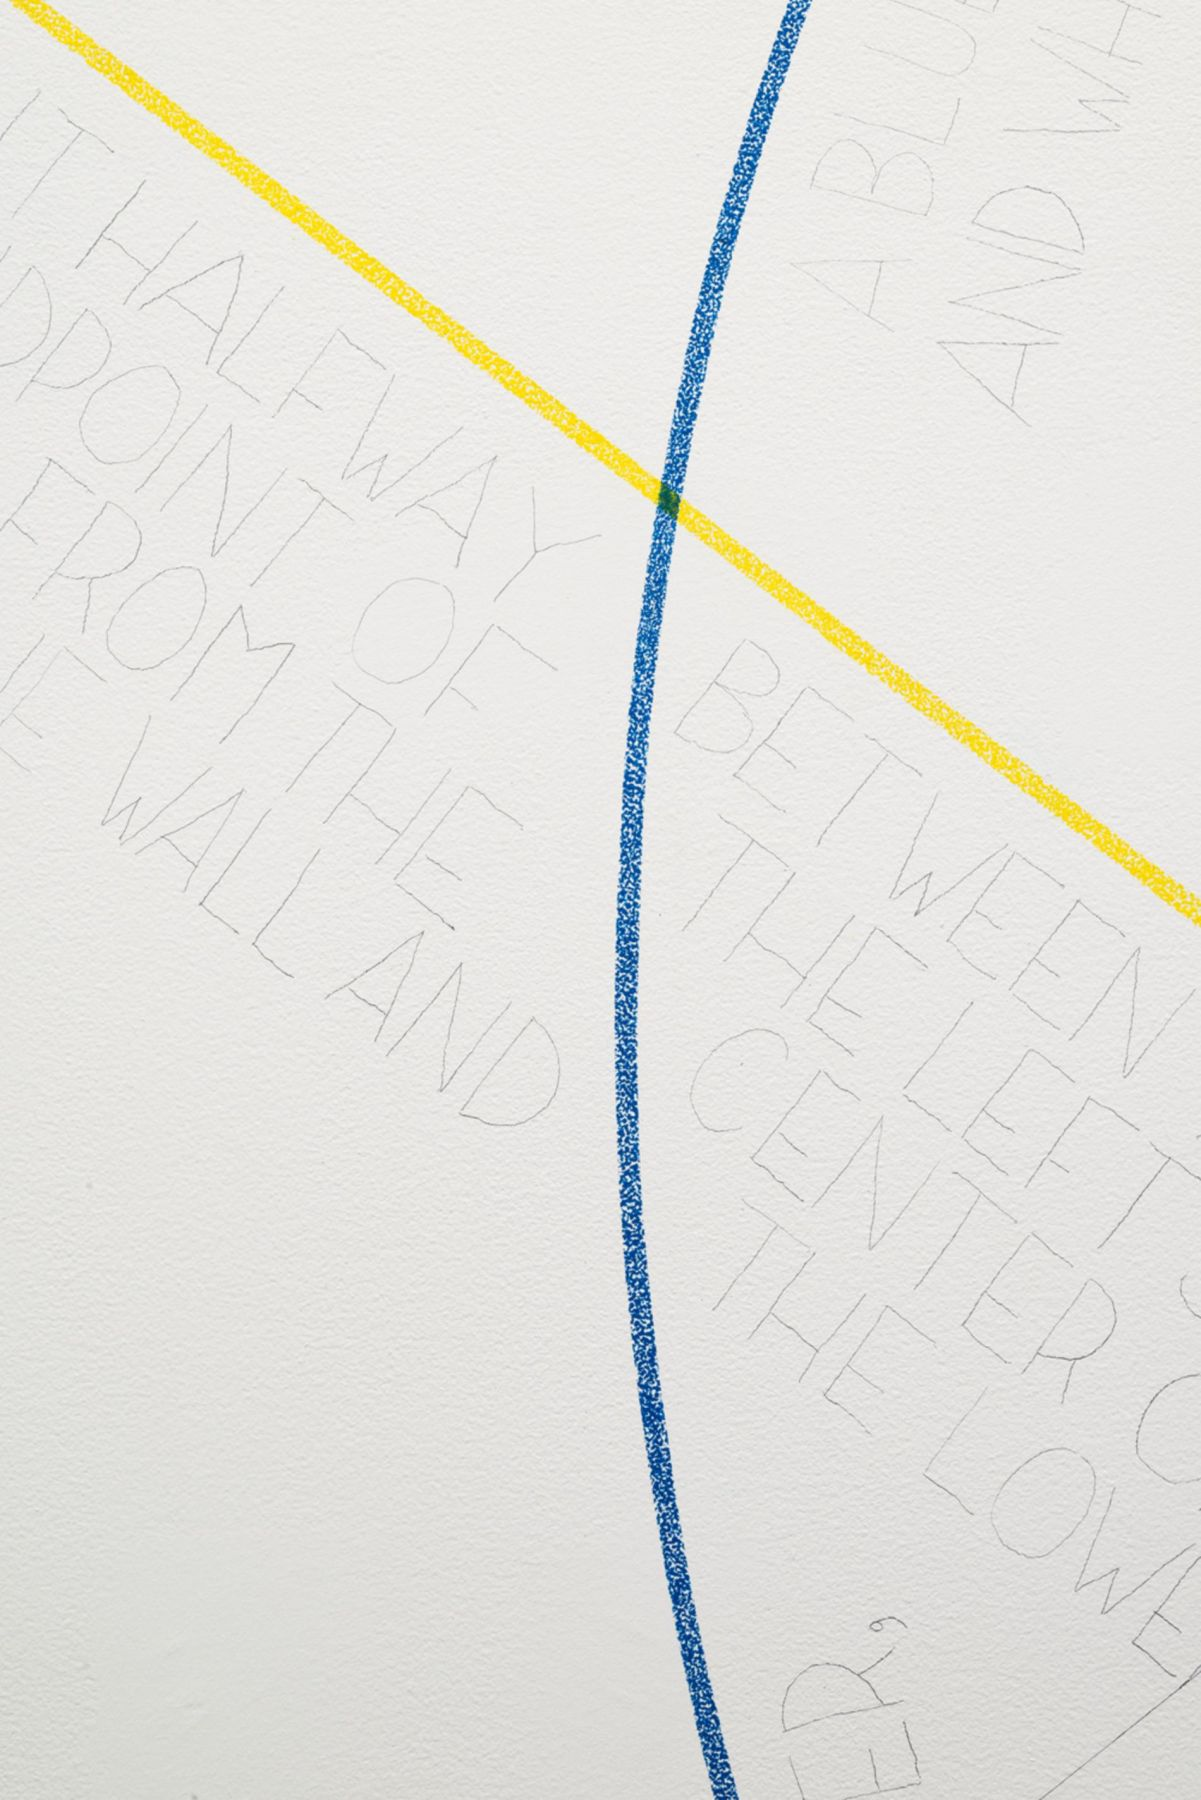 , SOL LEWITT Wall Drawing #283 (detail), 1976 Red, yellow, and blue crayon Dimensions variable  Courtesy of the Estate of Sol LeWitt and Paula Cooper Gallery, New York